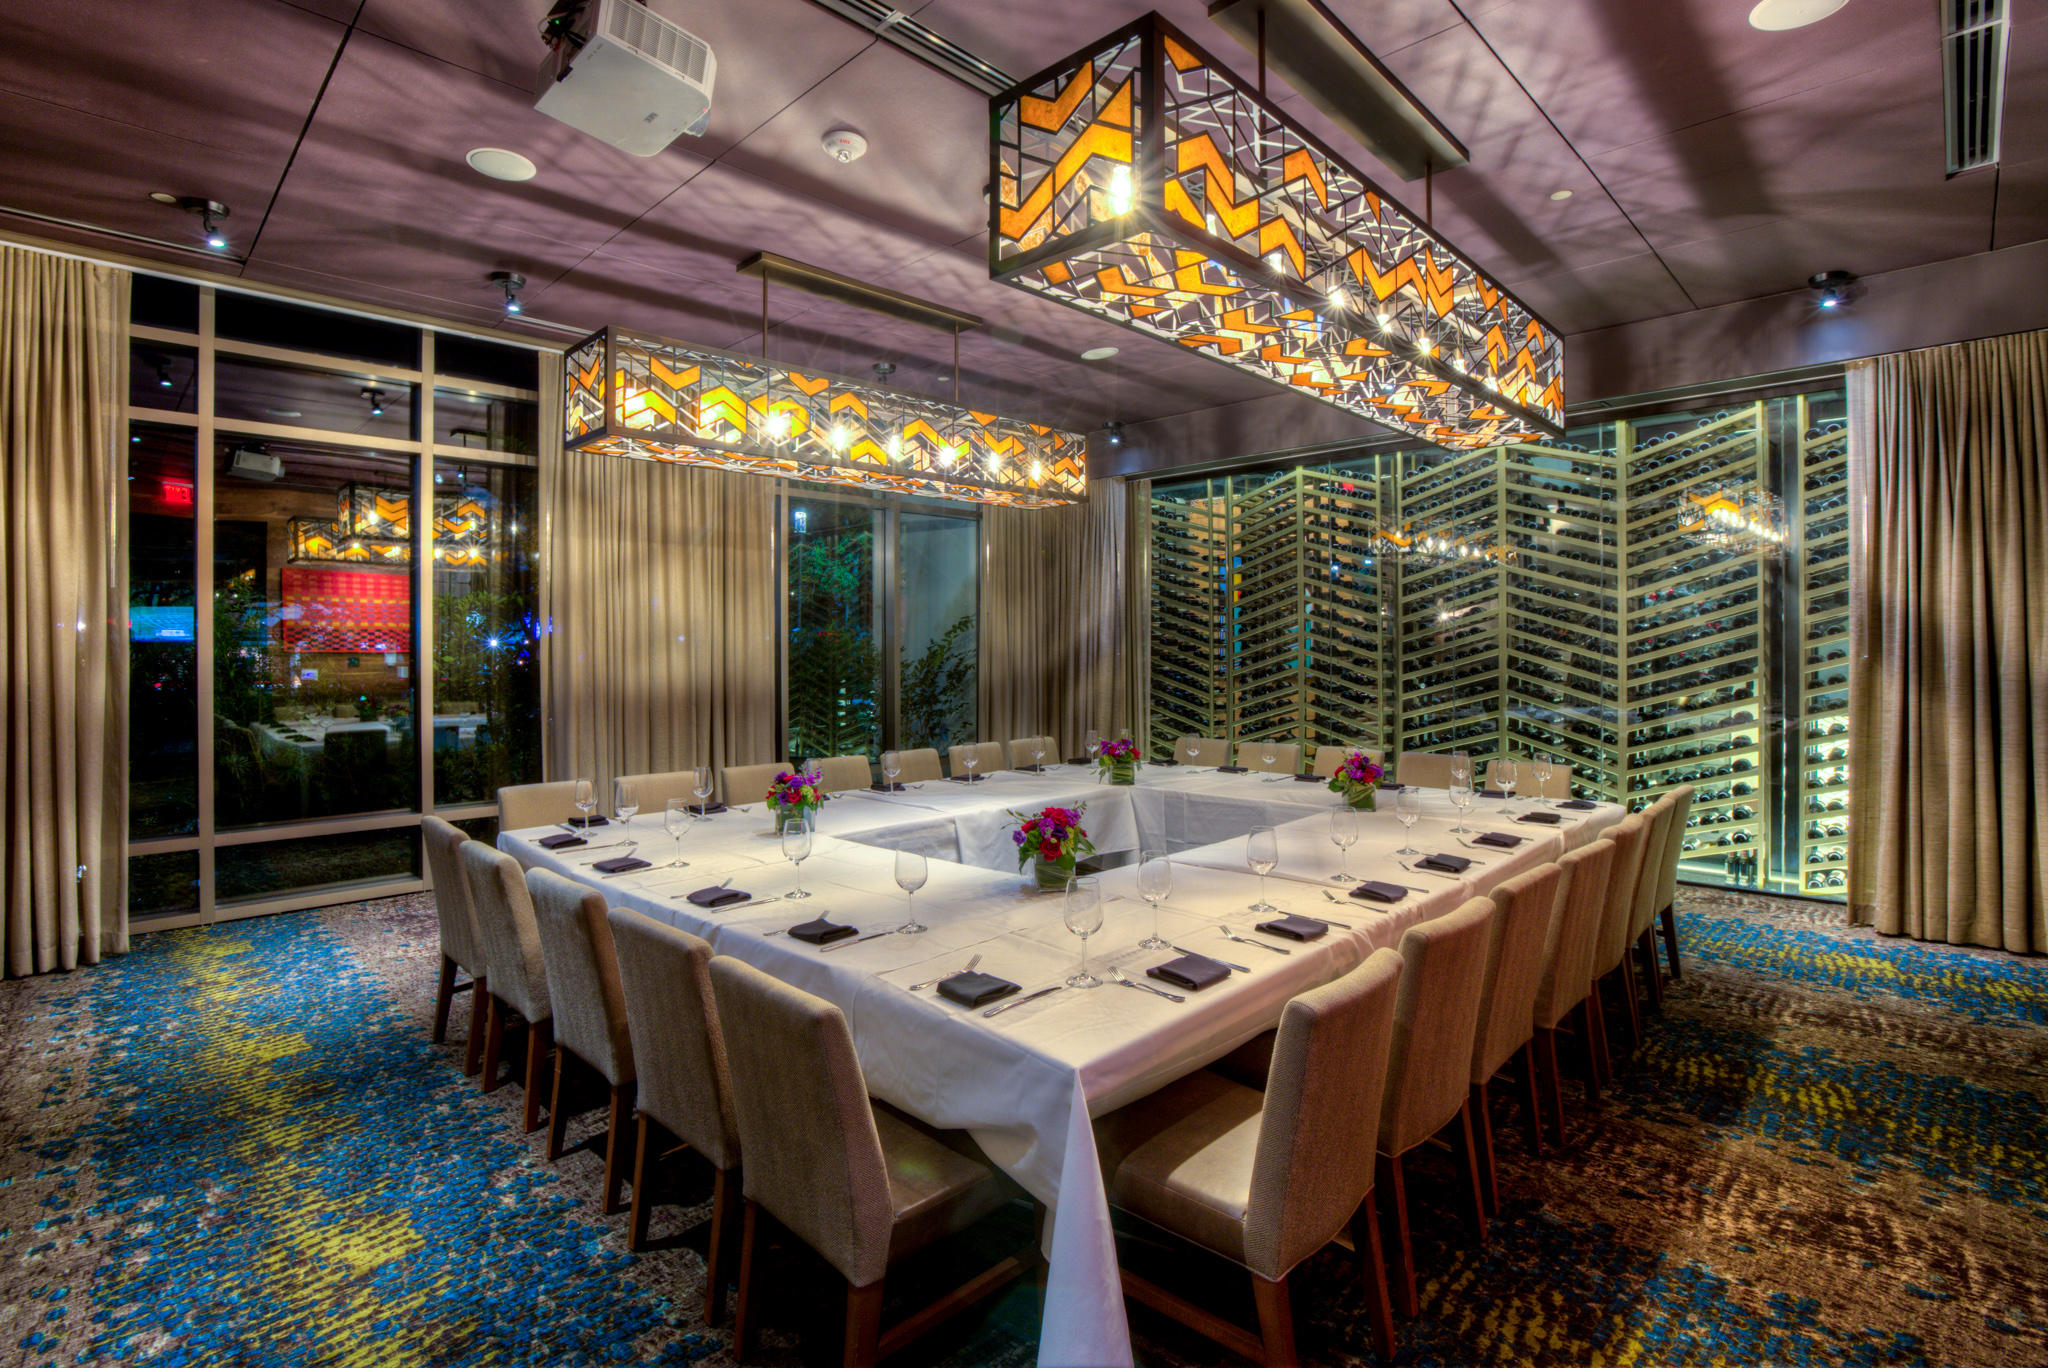 Del Frisco's Double Eagle Steak House Orlando BARREL ROOM (HALF CELLAR) private dining room